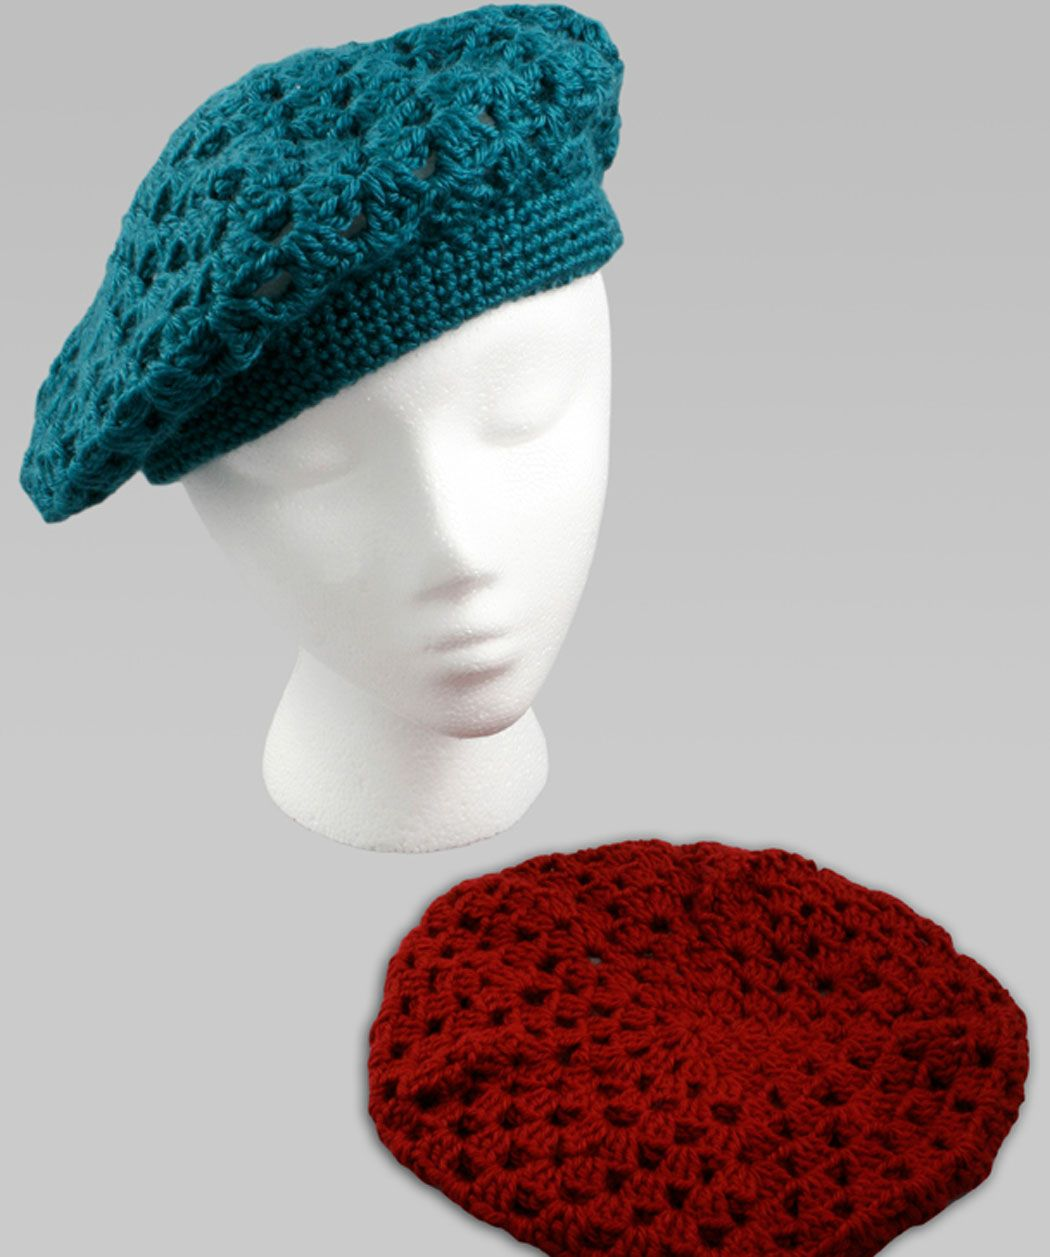 Crochet Beret Free Download Printable Instructions From